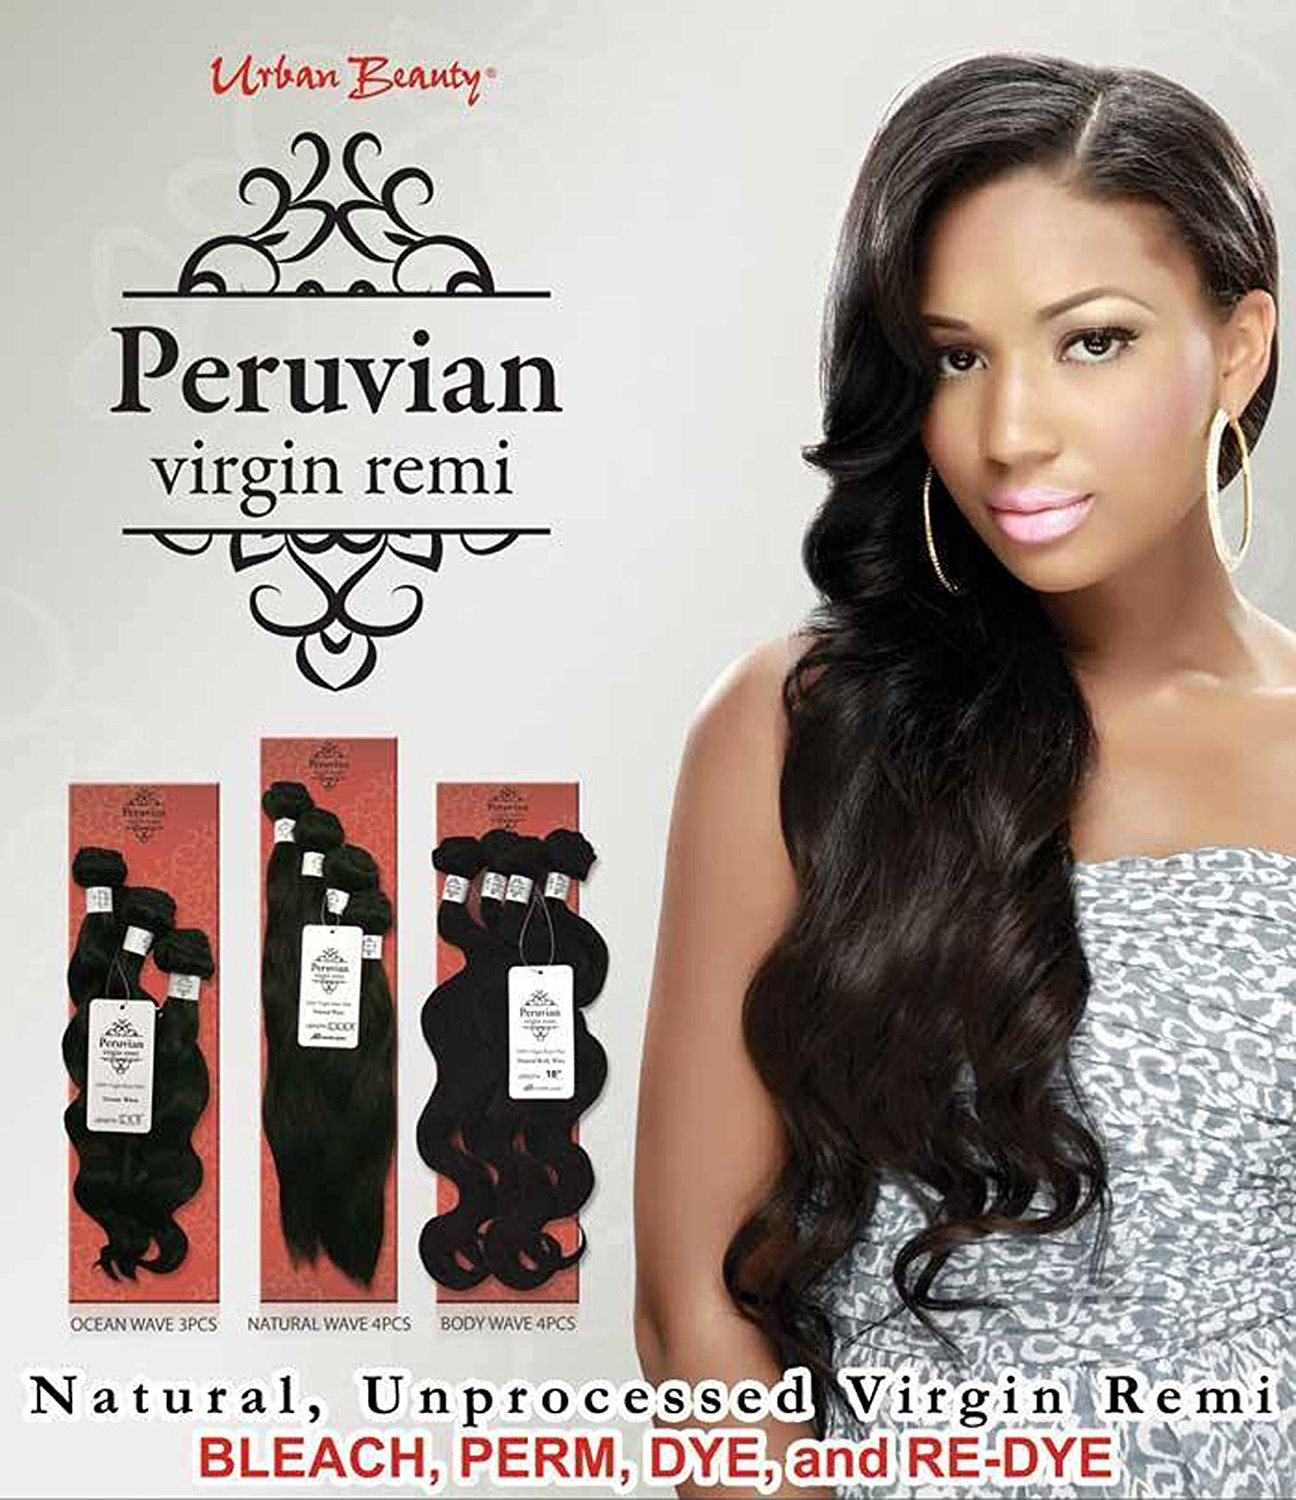 "Urban Beauty Peruvian Virgin Remi 100% Virgin Remi Hair Natural Straight 4 bundles12""14"" 14"" 16"" in the Pack (18"" 20"" 22"" 24"", Body Wave)"